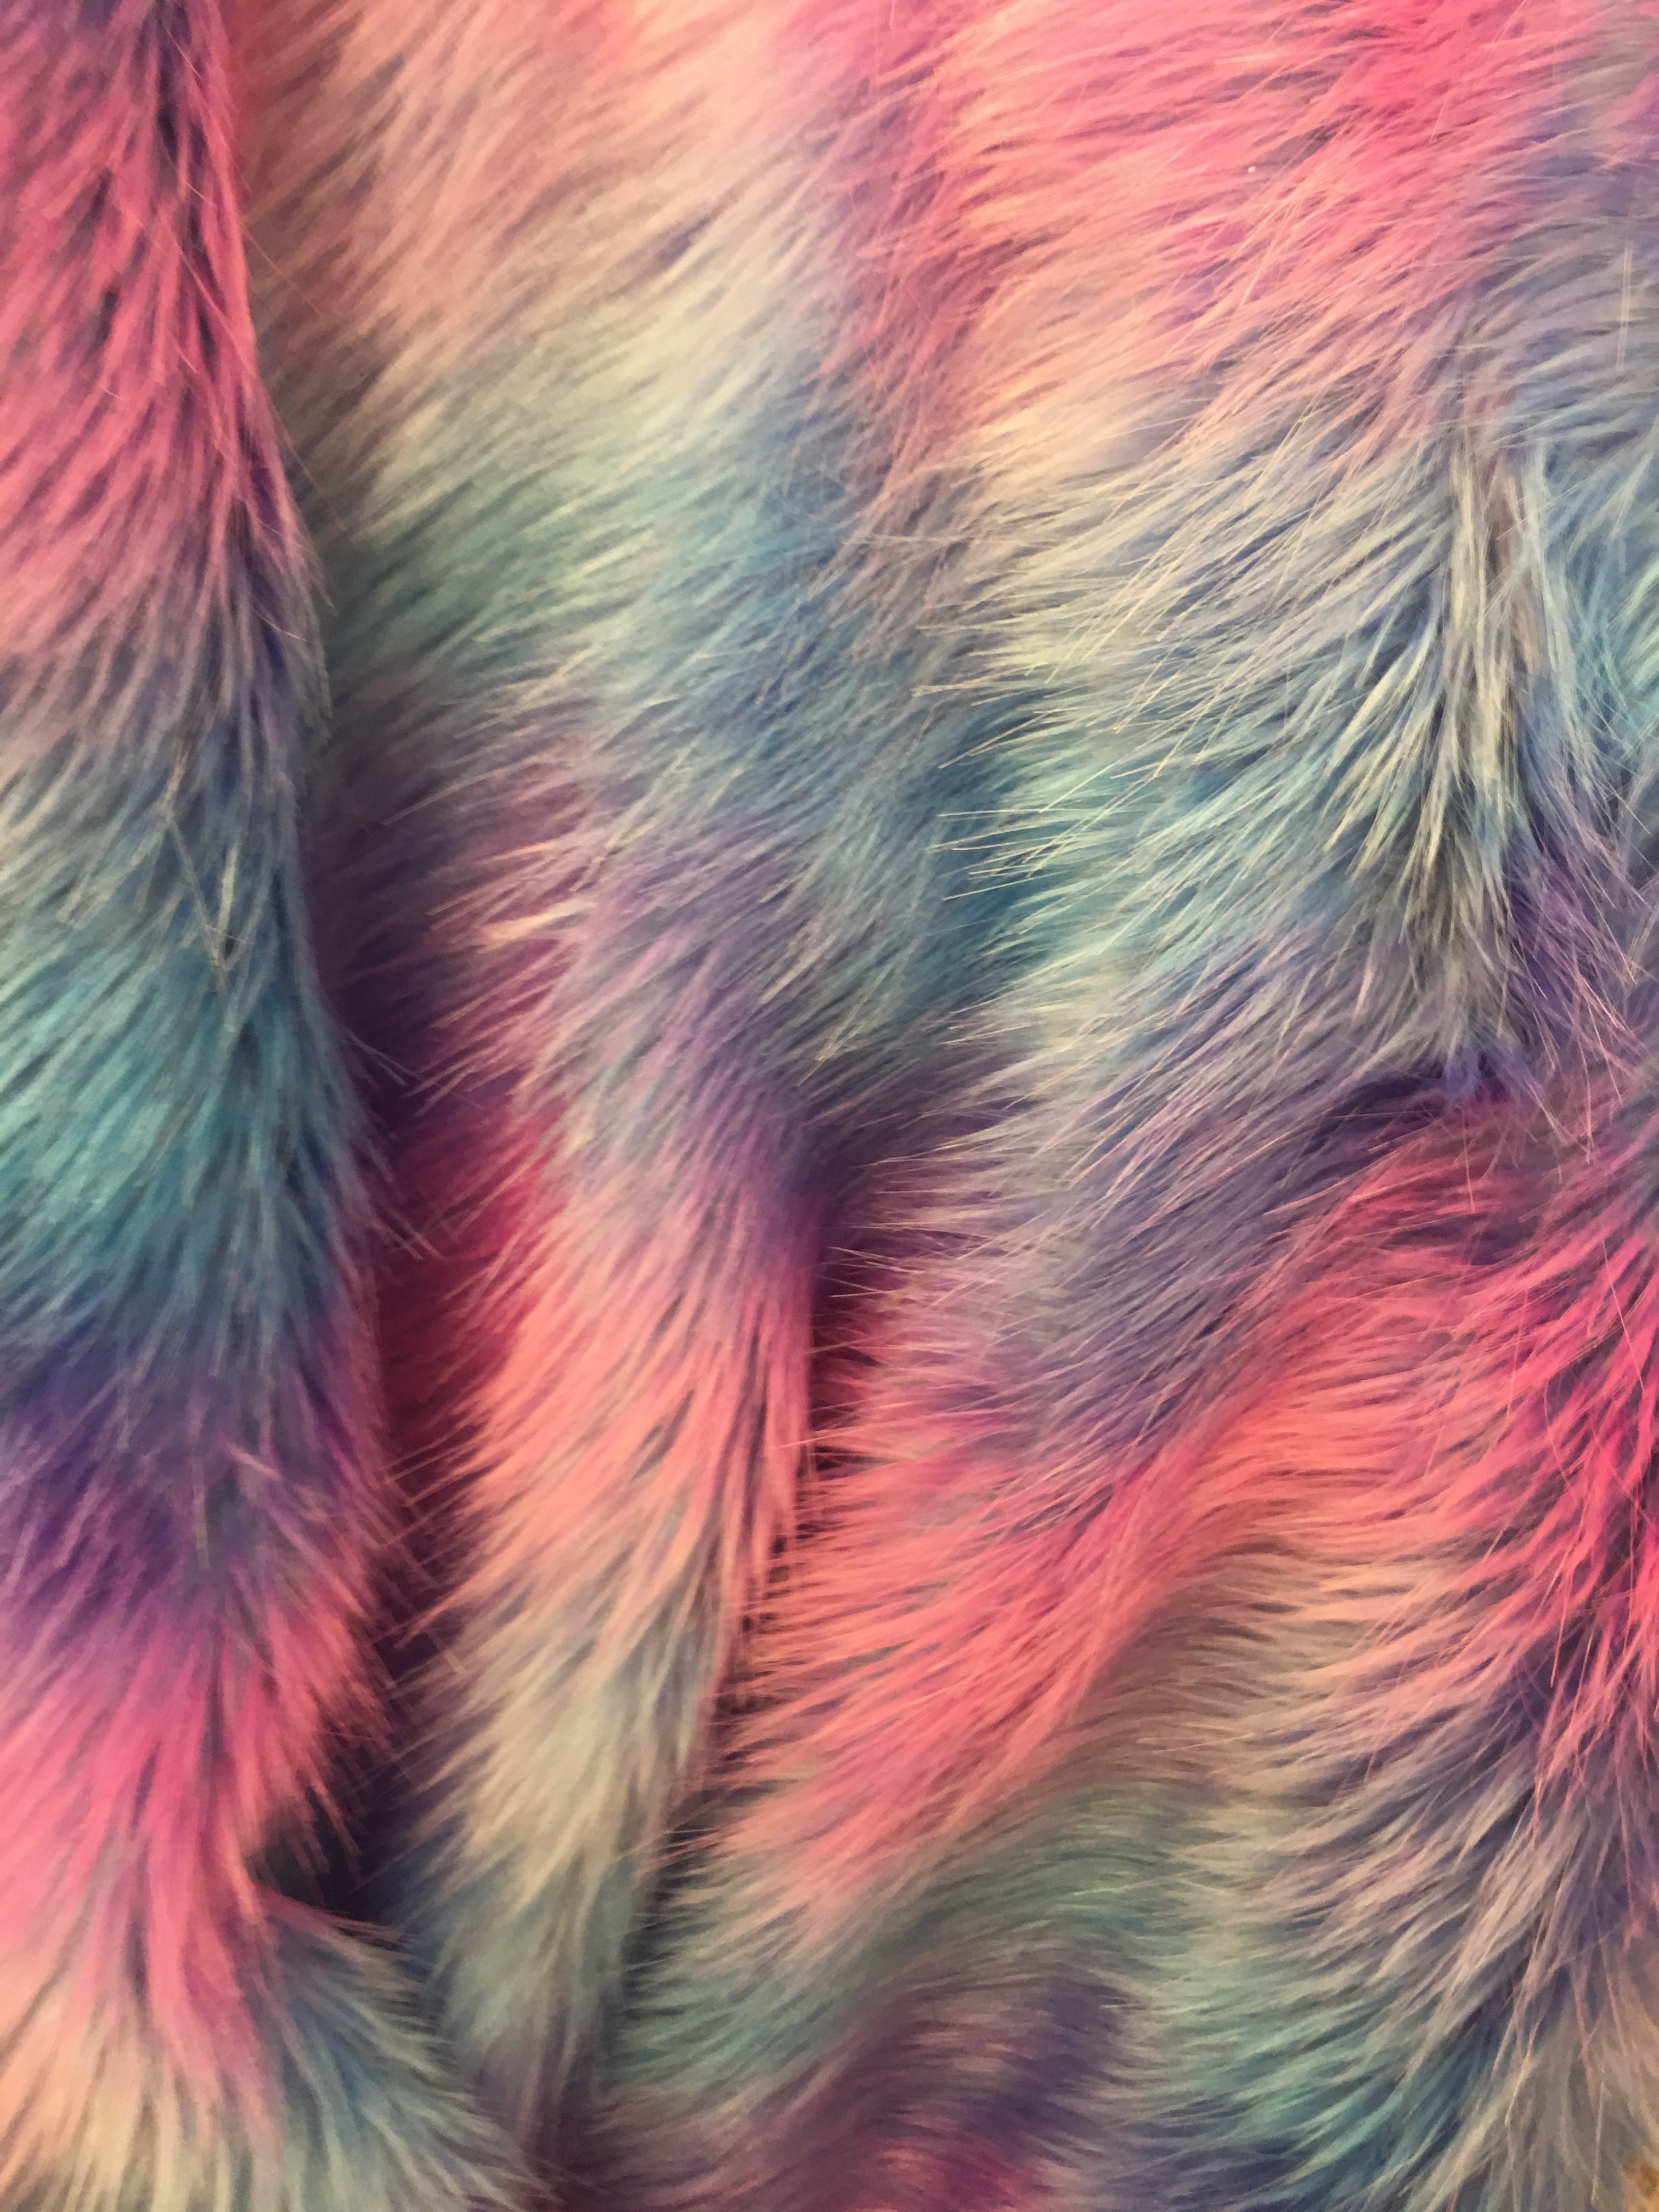 Faux Fake Fur Wave Rainbow Long Pile Fabric / Wave Rainbow / Sold By The Yard Pink Blue